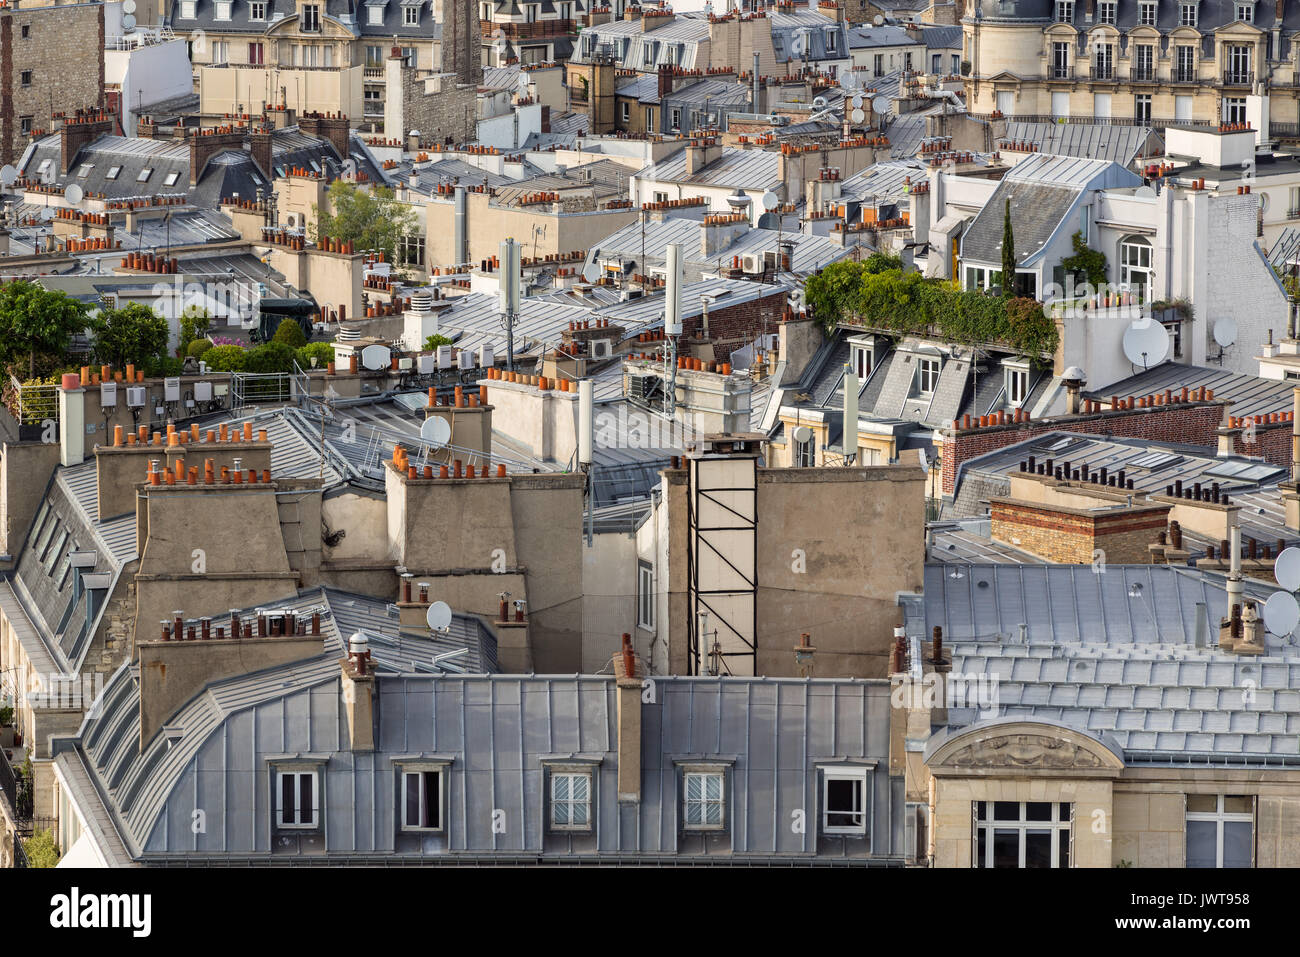 Paris rooftops in summer with roof gardens and mansard roofs. 17th Arrondissement of Paris, France Stock Photo